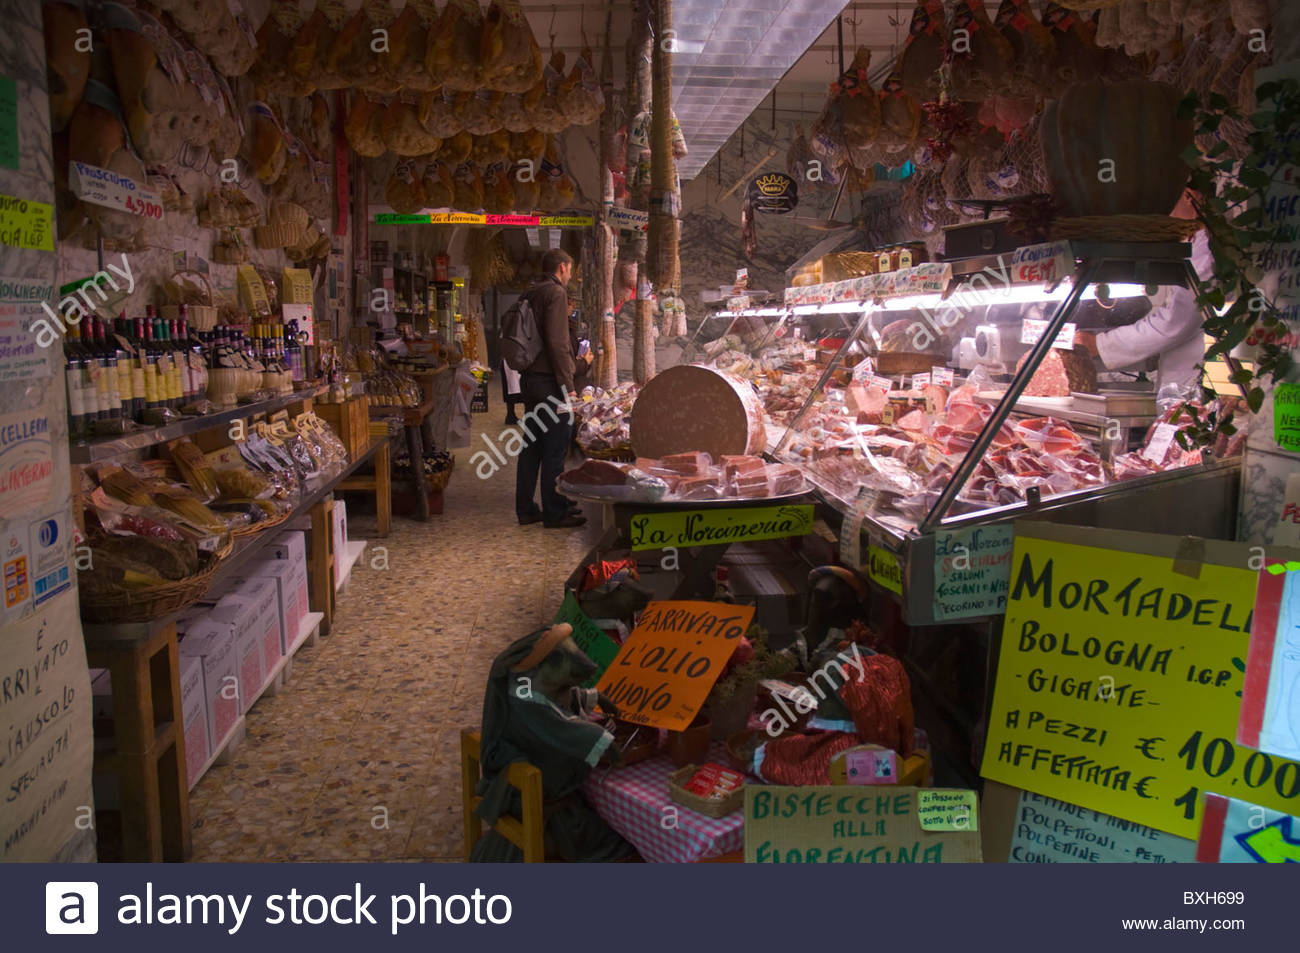 Shop inside Mercato Centrale the central market Florence (Firenze) Tuscany central Italy Europe - Stock Image